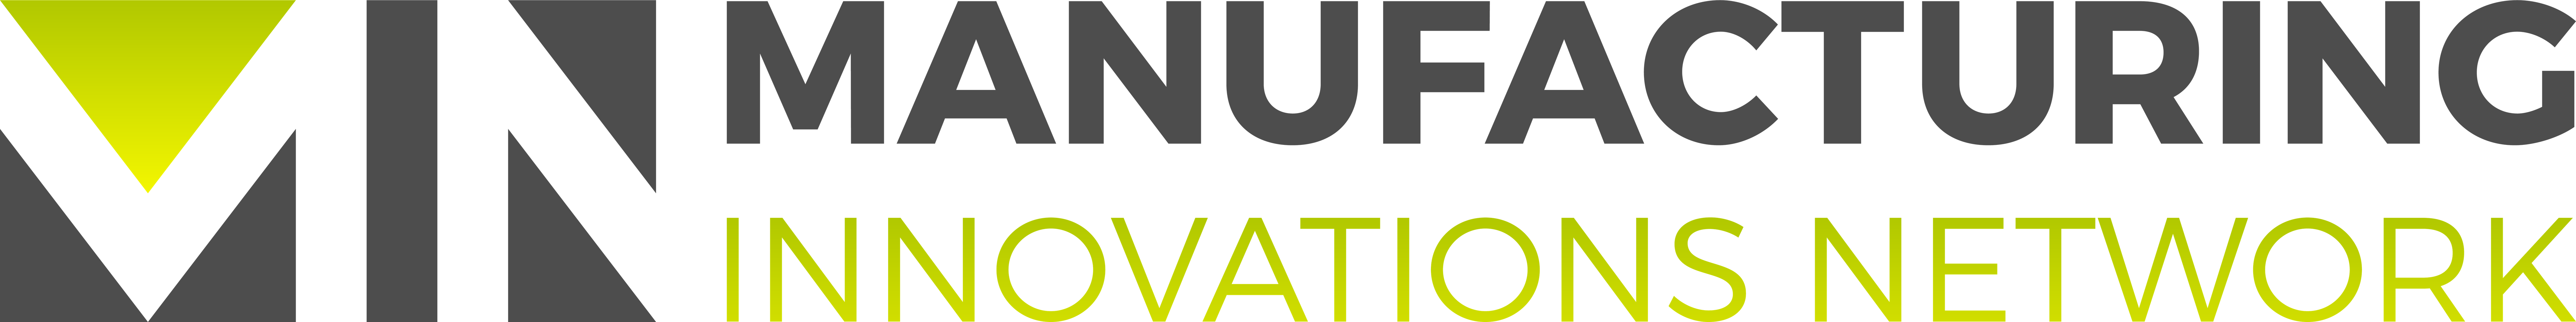 Manufacturing Innovations Network